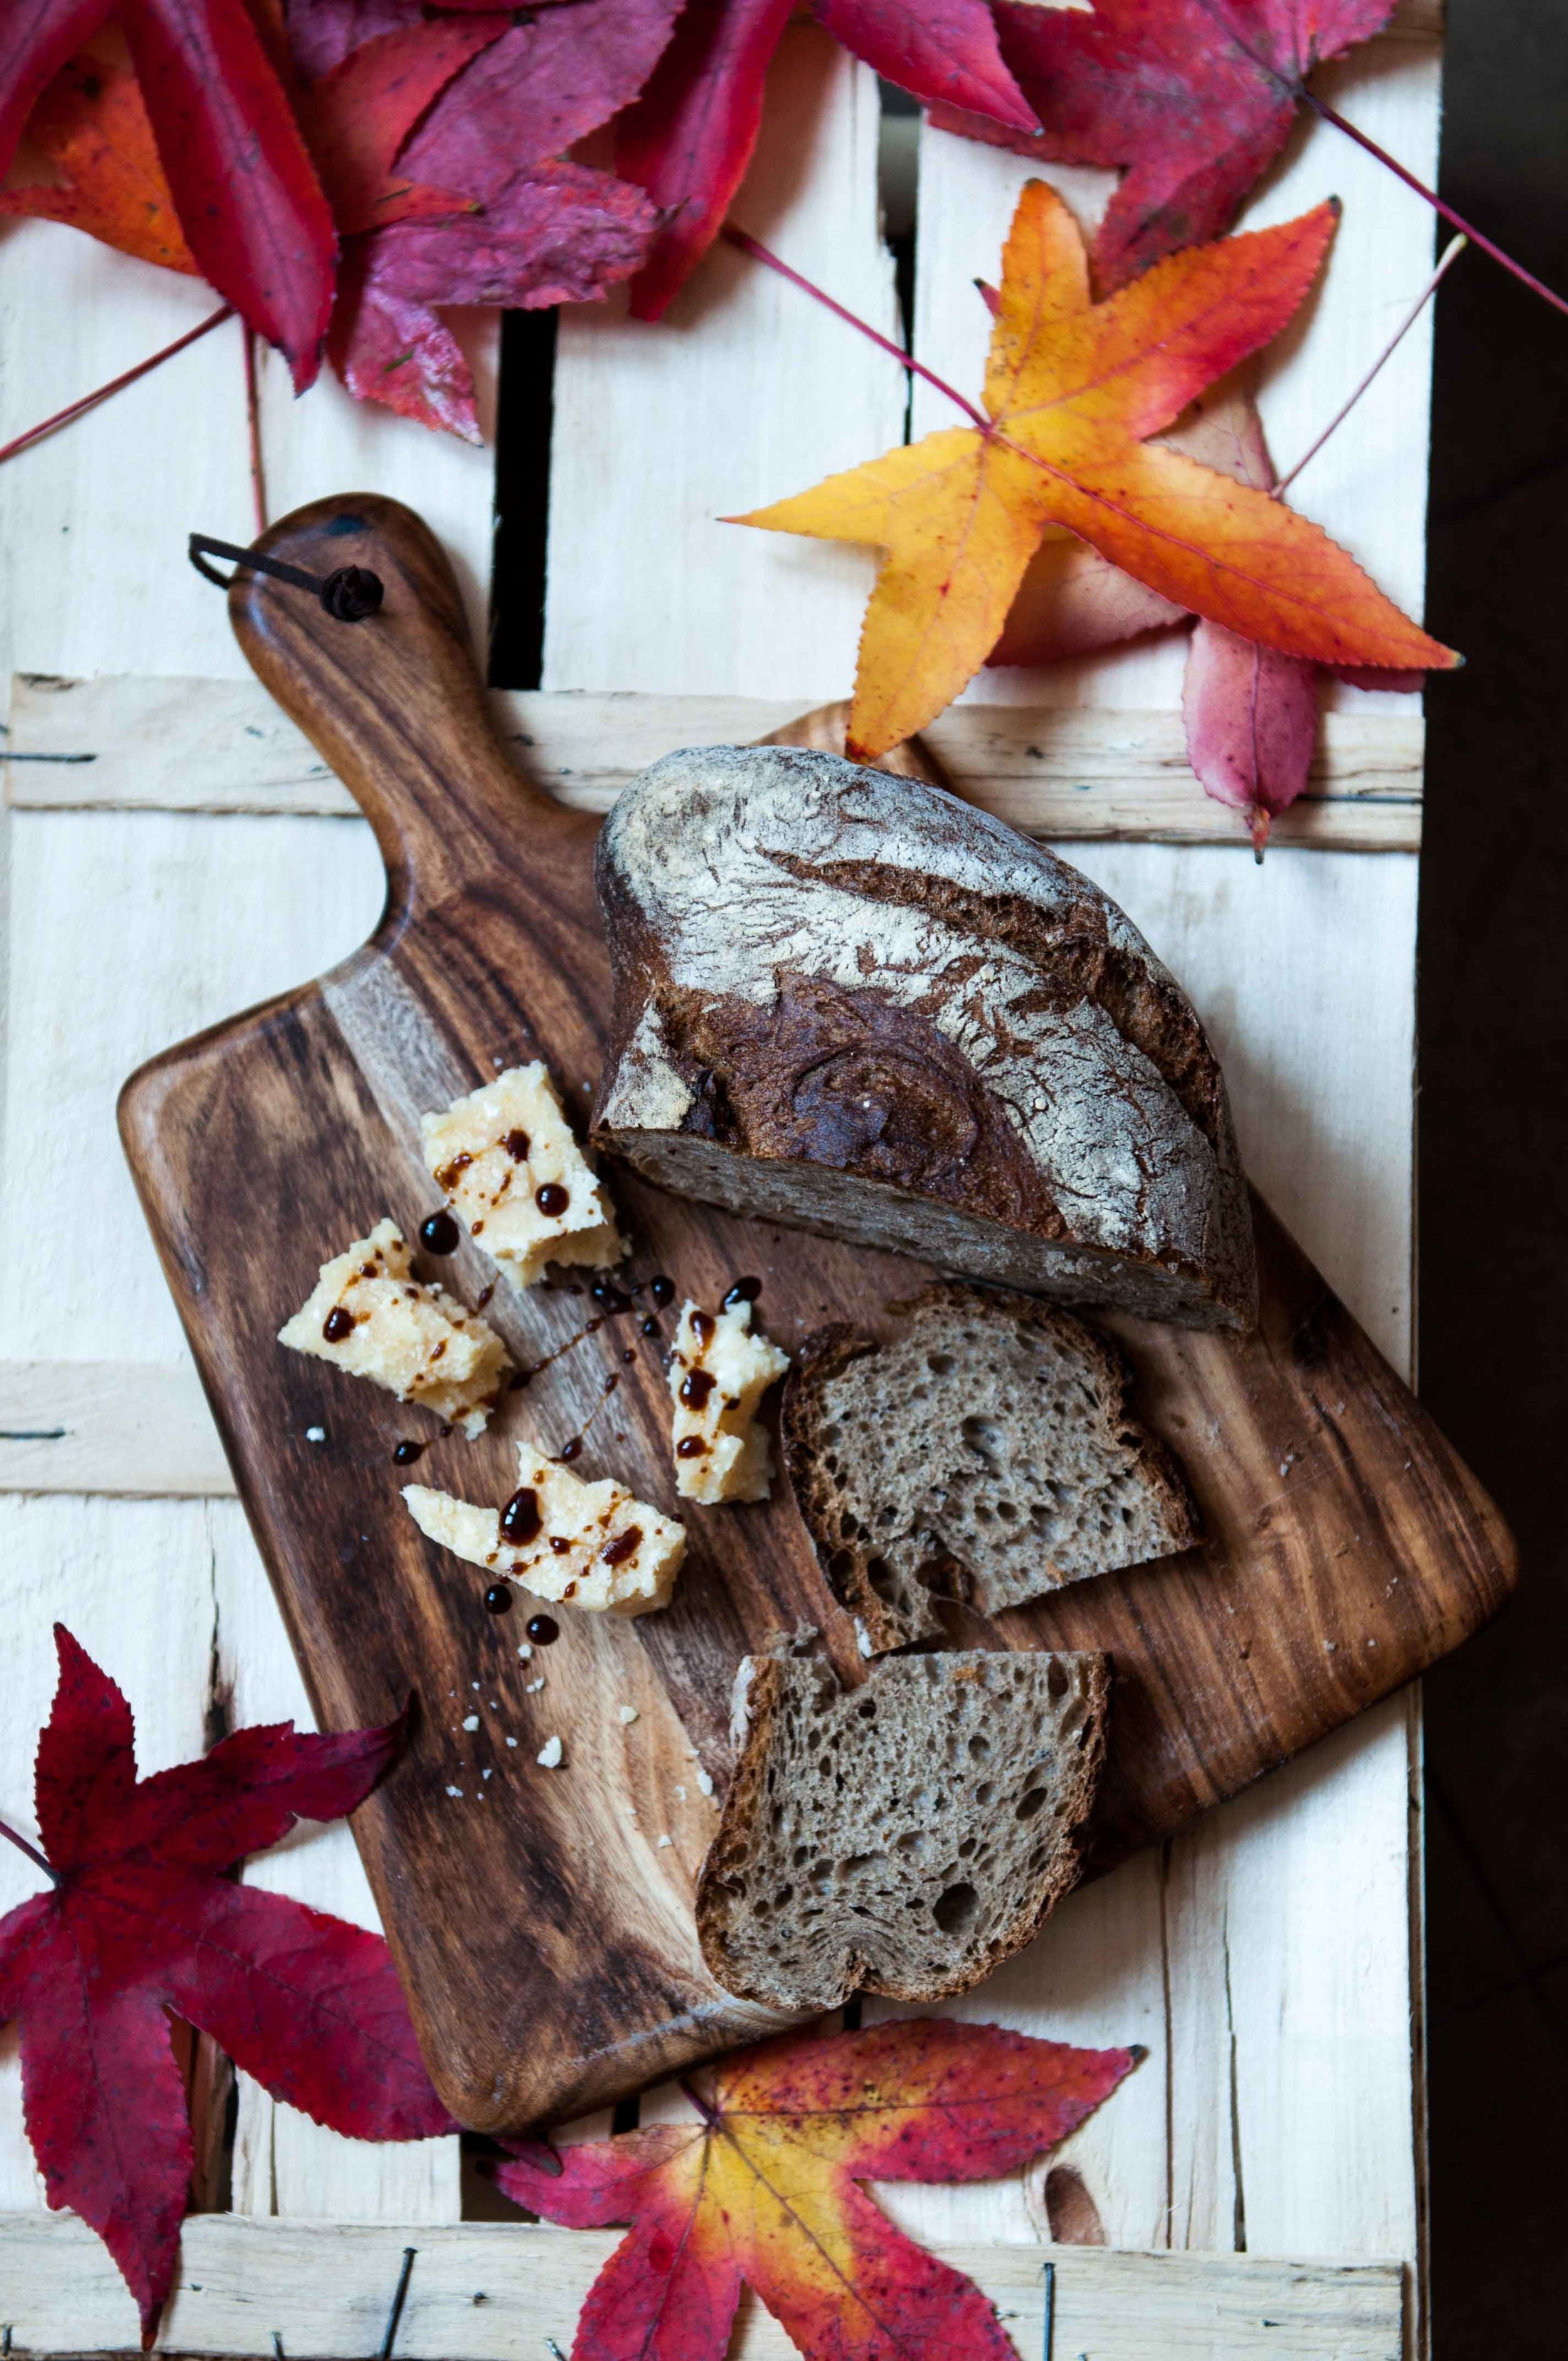 The simplest and humblest of combinations come with elegant luxury in Italy for their impeccable quality and attention to tradition... Like the classic pairing of aged traditional balsamic vinegar and 36M parmagiano reggiano cheese, with some crusty good bread.